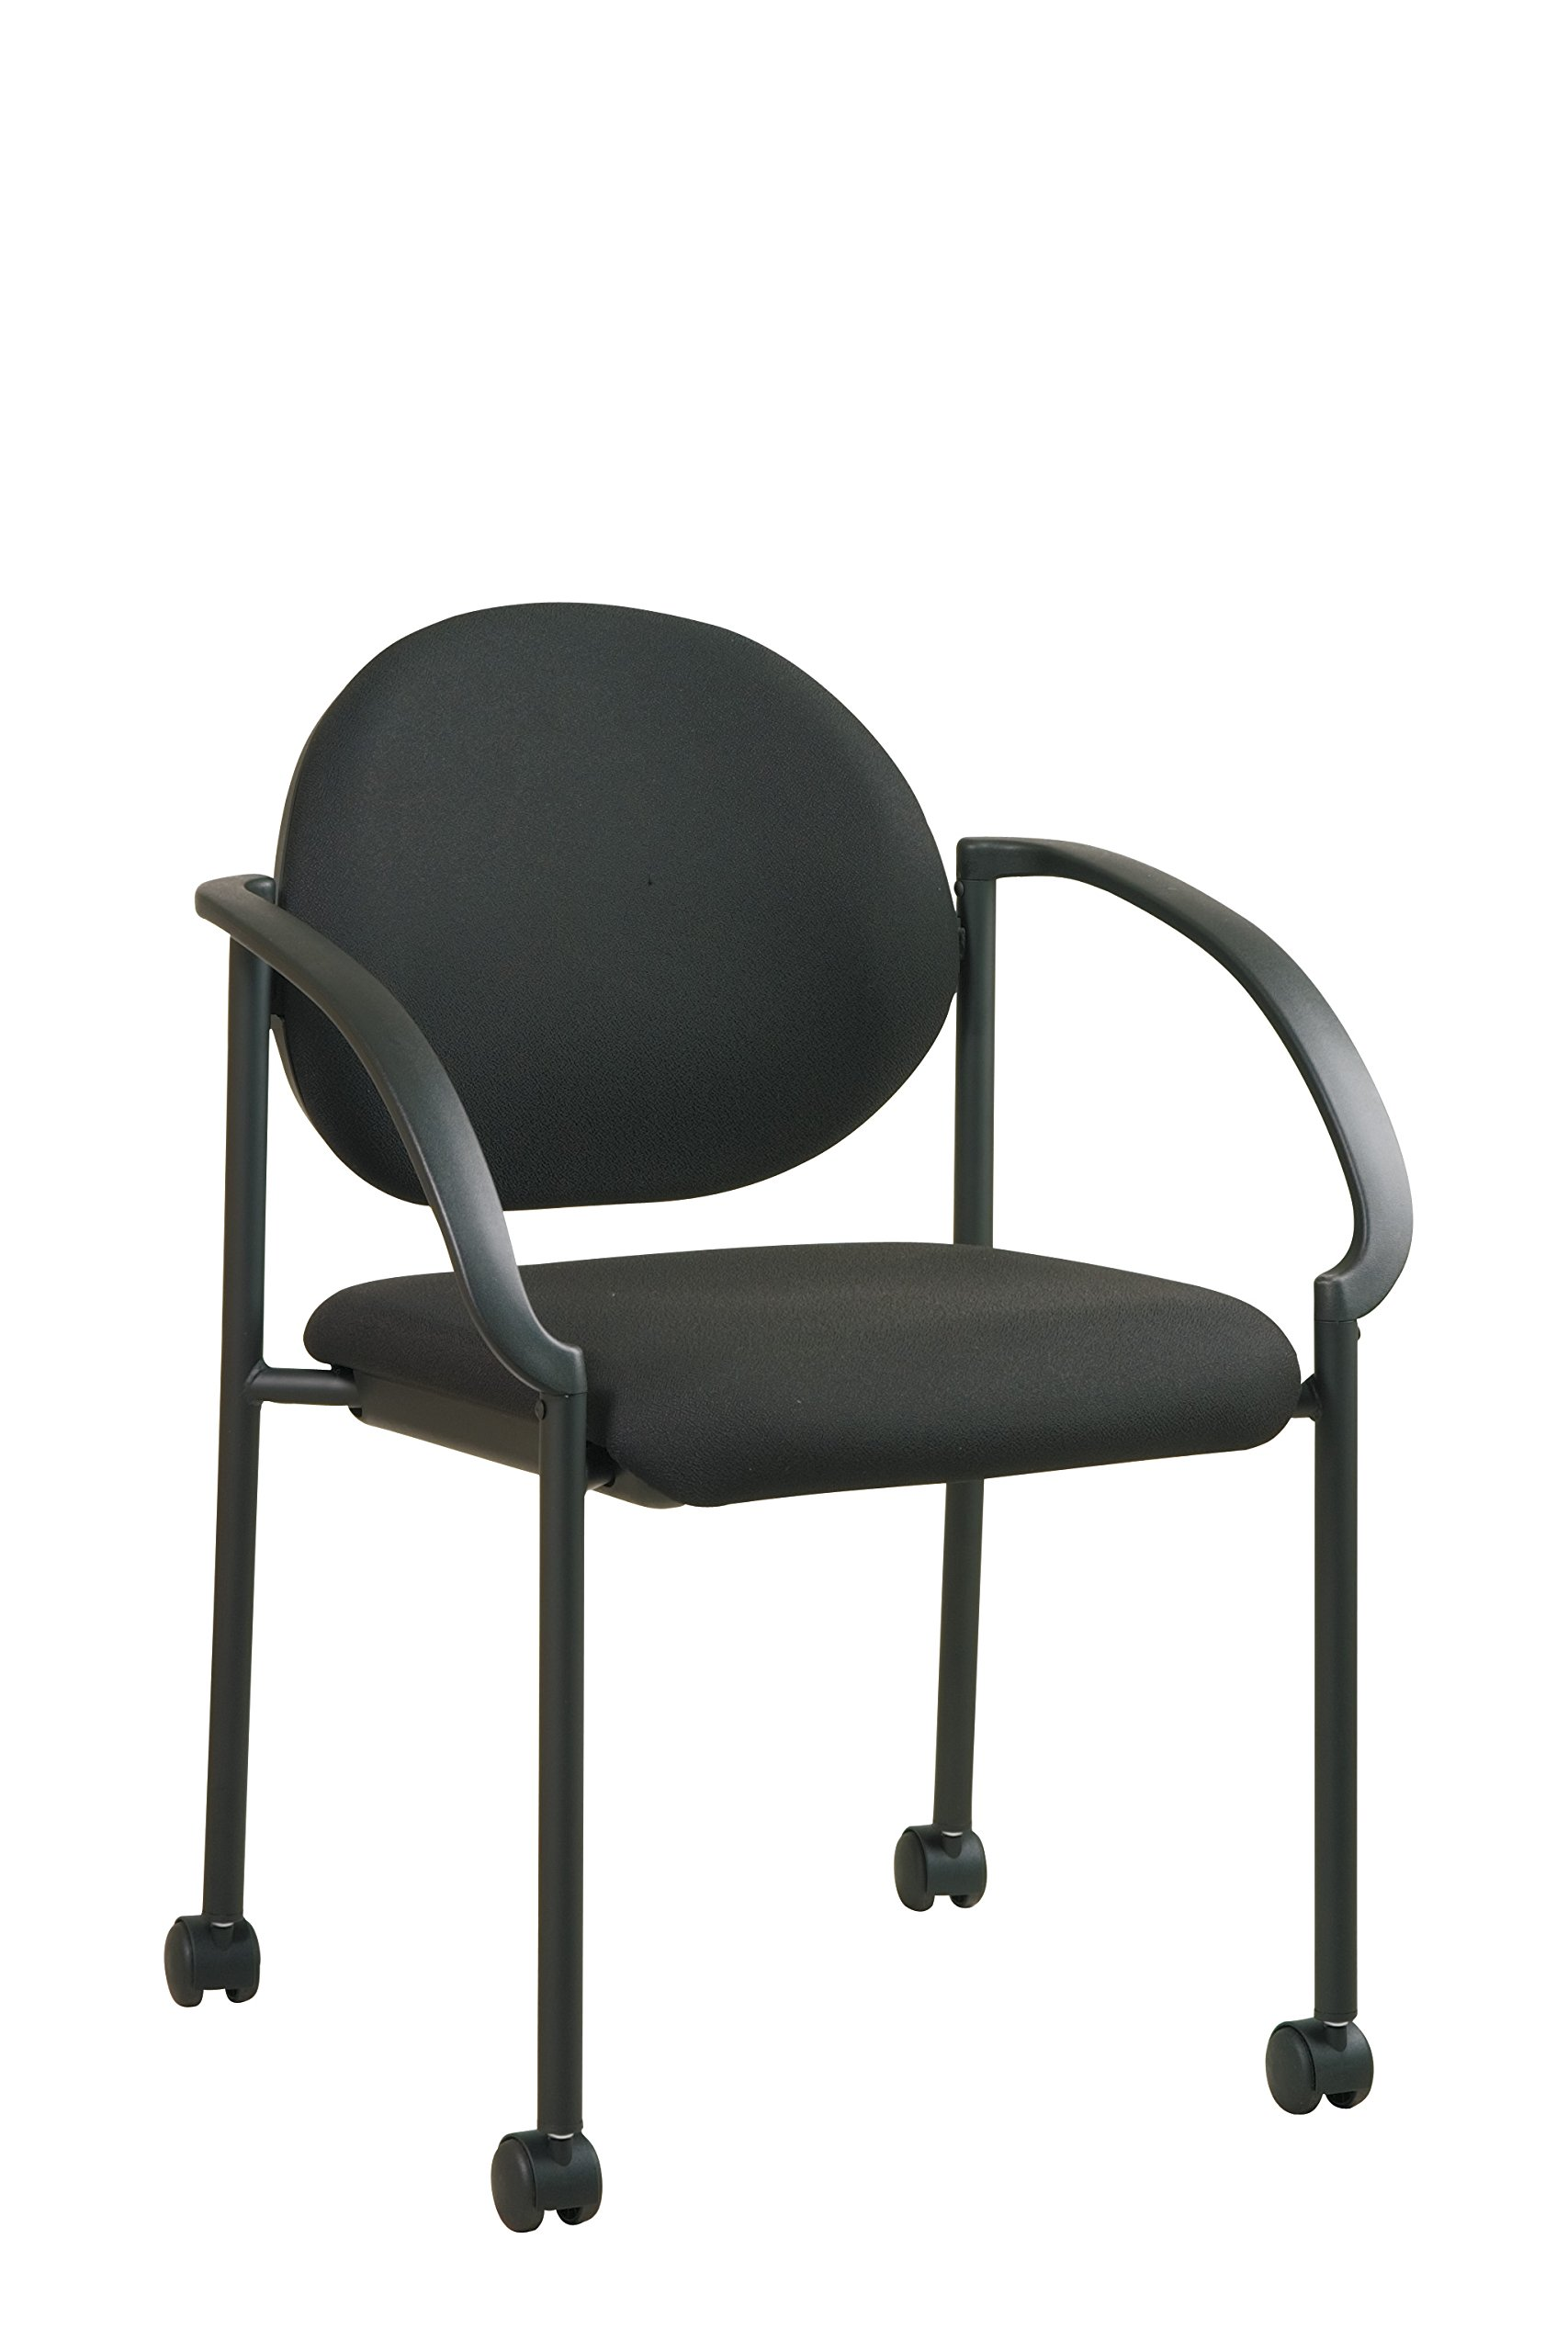 Office Star Padded Fabric Seat and Back Stacking Chair with Arms and Dual Wheel Carpet Casters, Black